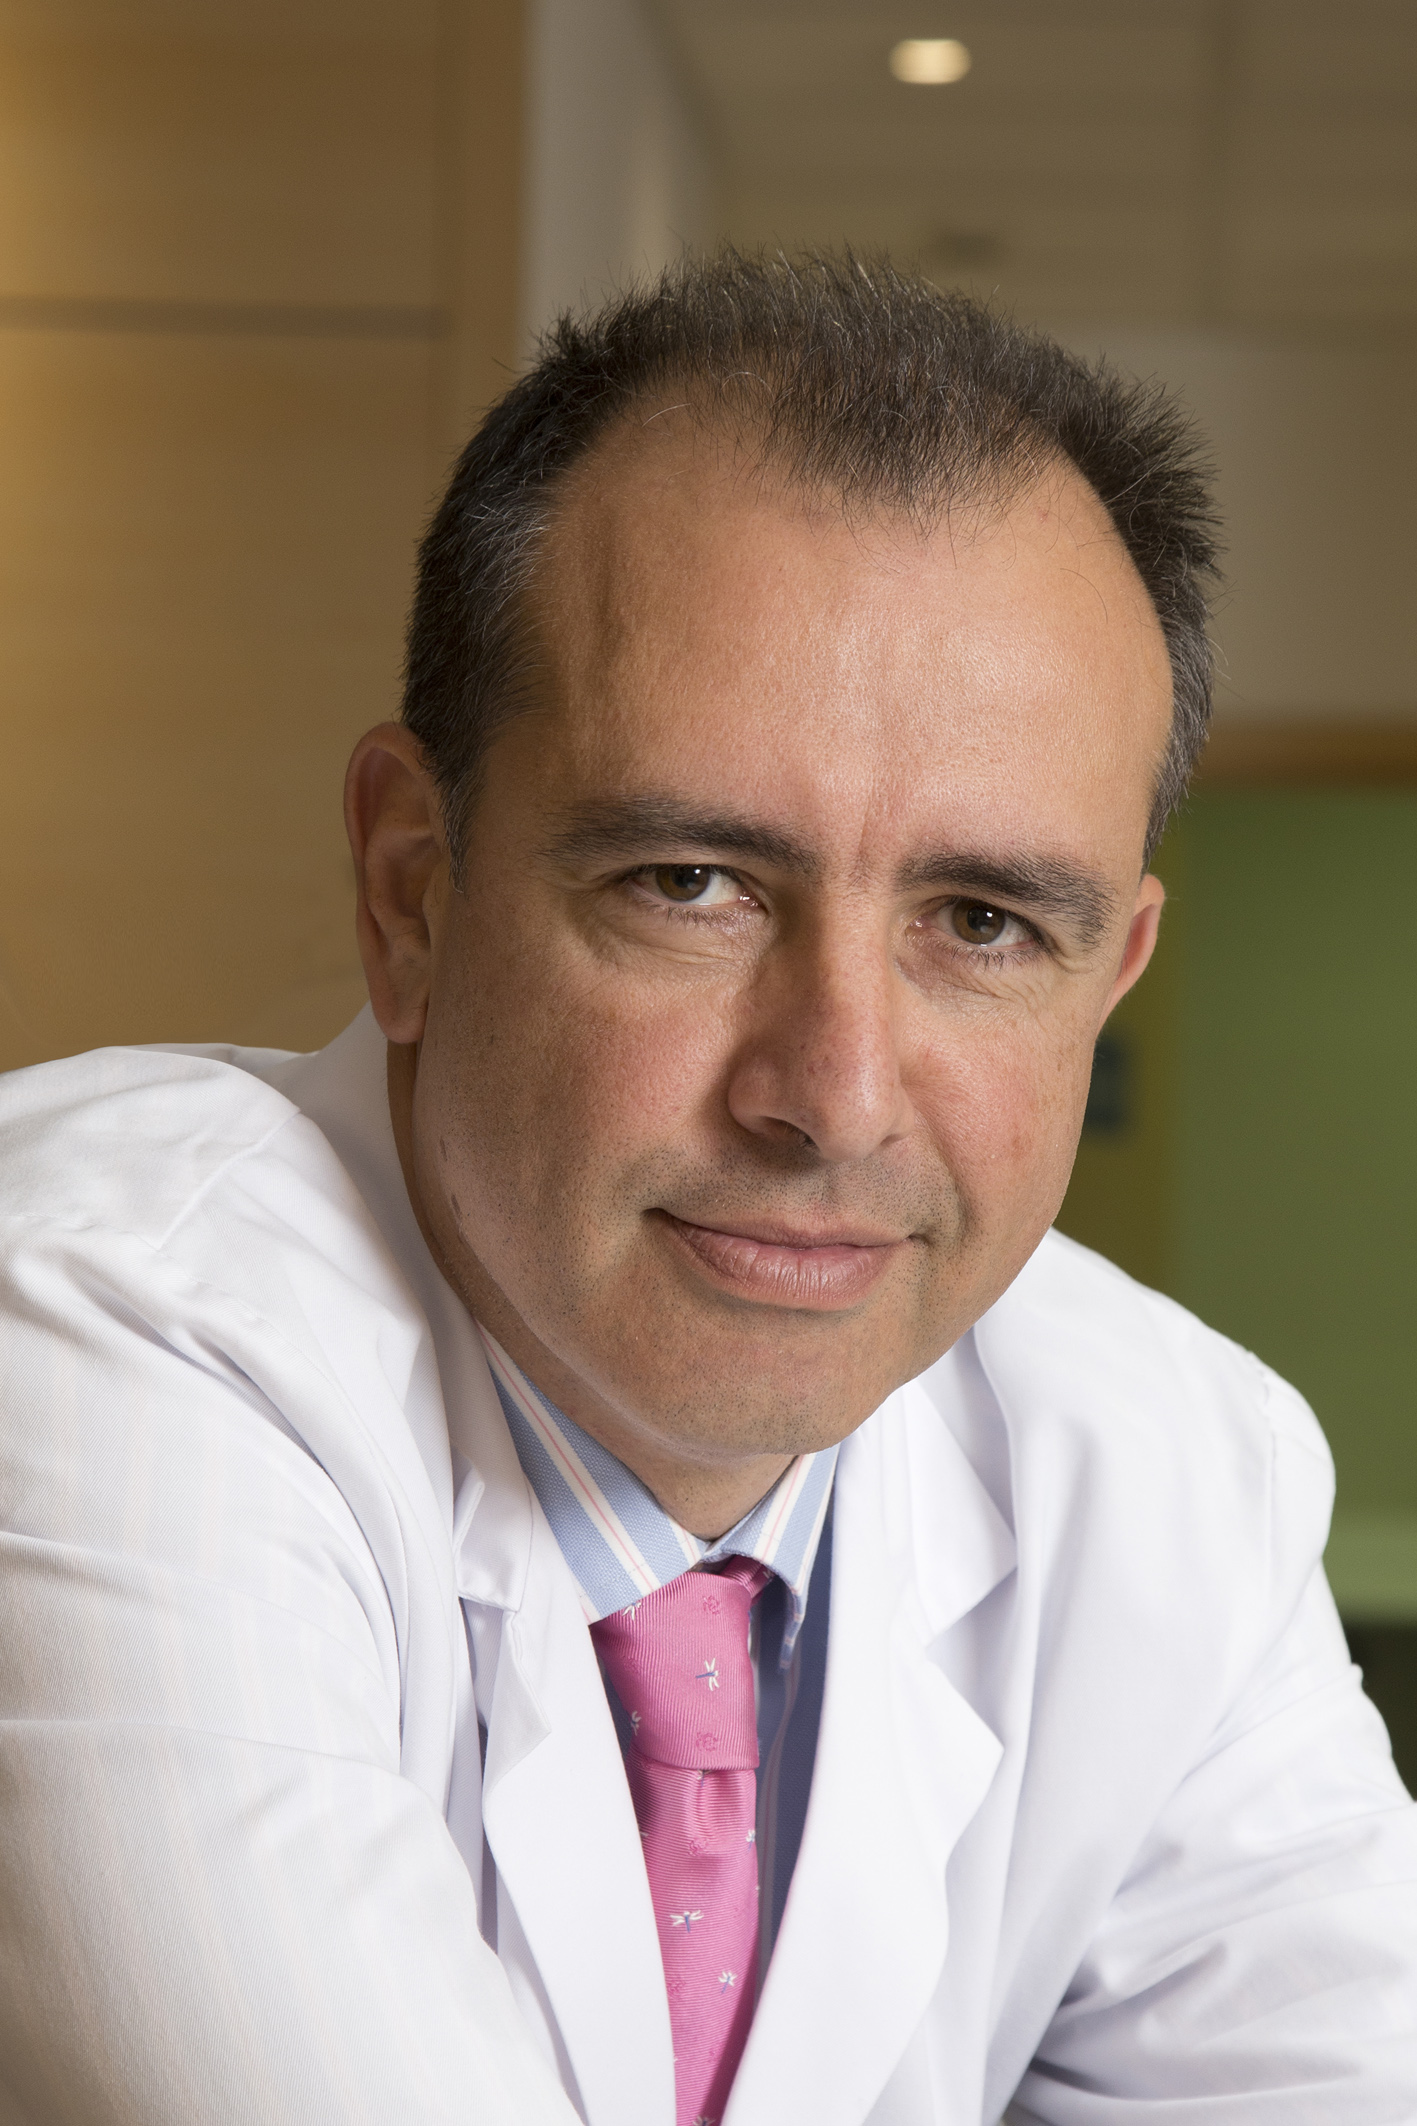 Dr. Javier Arias Gallo